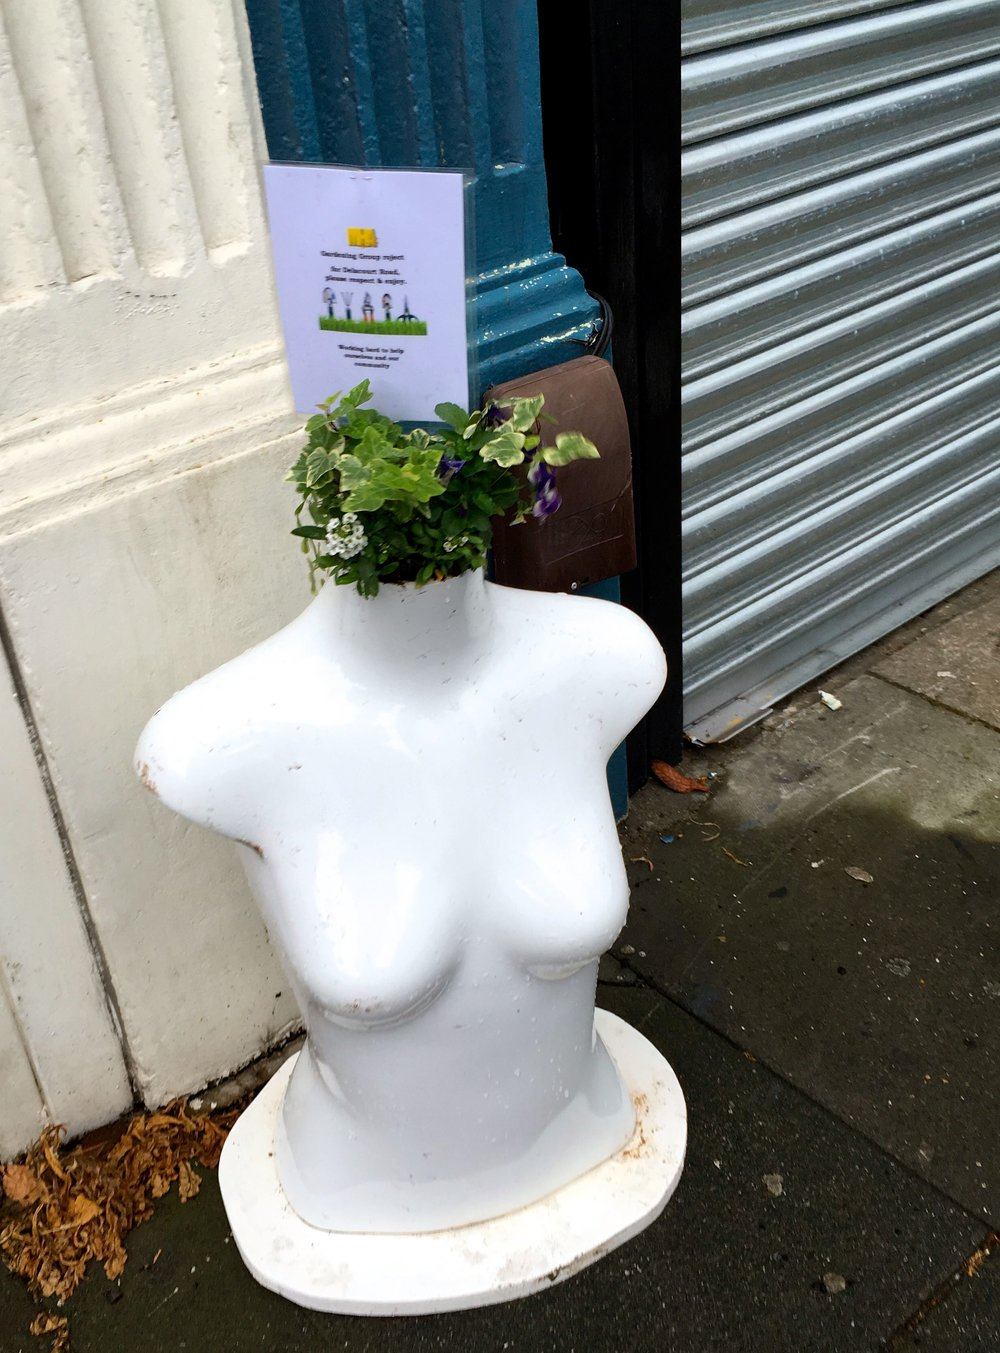 AND OF COURSE, A TORSO OUTSIDE THE WELLBEING CENTRE